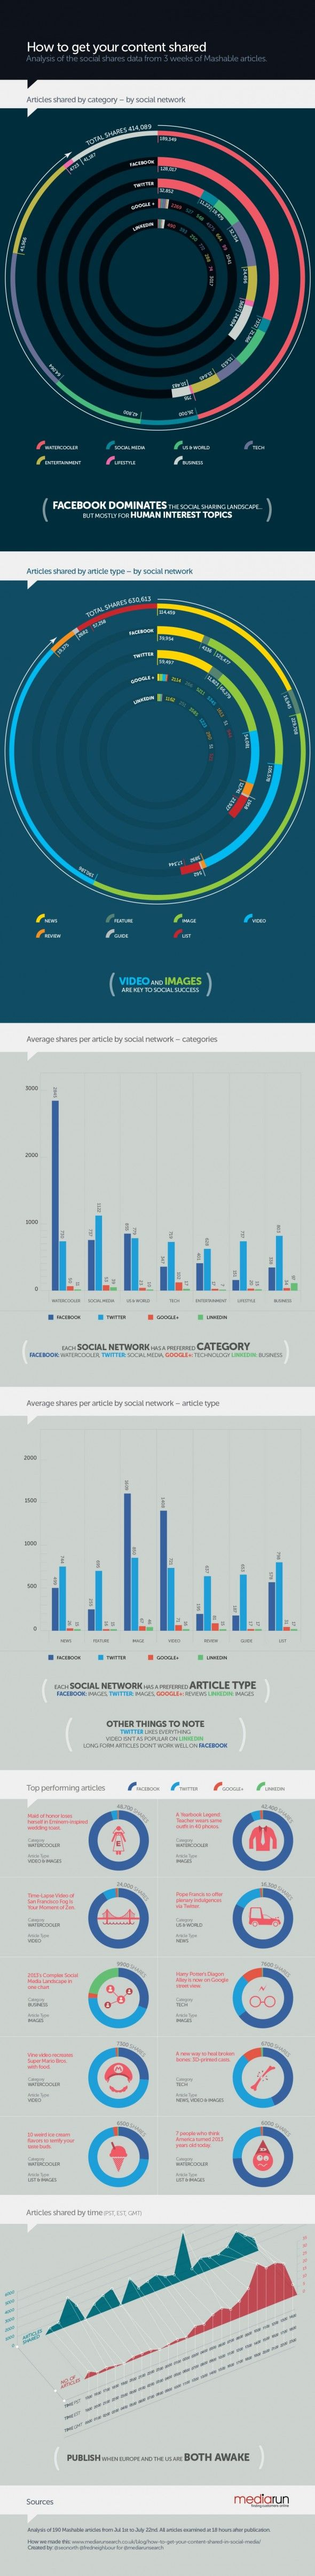 Infographic: How to Get Your Content Shared Online The folks at mediarunsearch.co.uk have studied 3 weeks of Mashable articles to discover how content gets shared. Analysis of 190 Mashable articles from Jul 1st to July 22nd. All articles examined at 18 hours after publication.